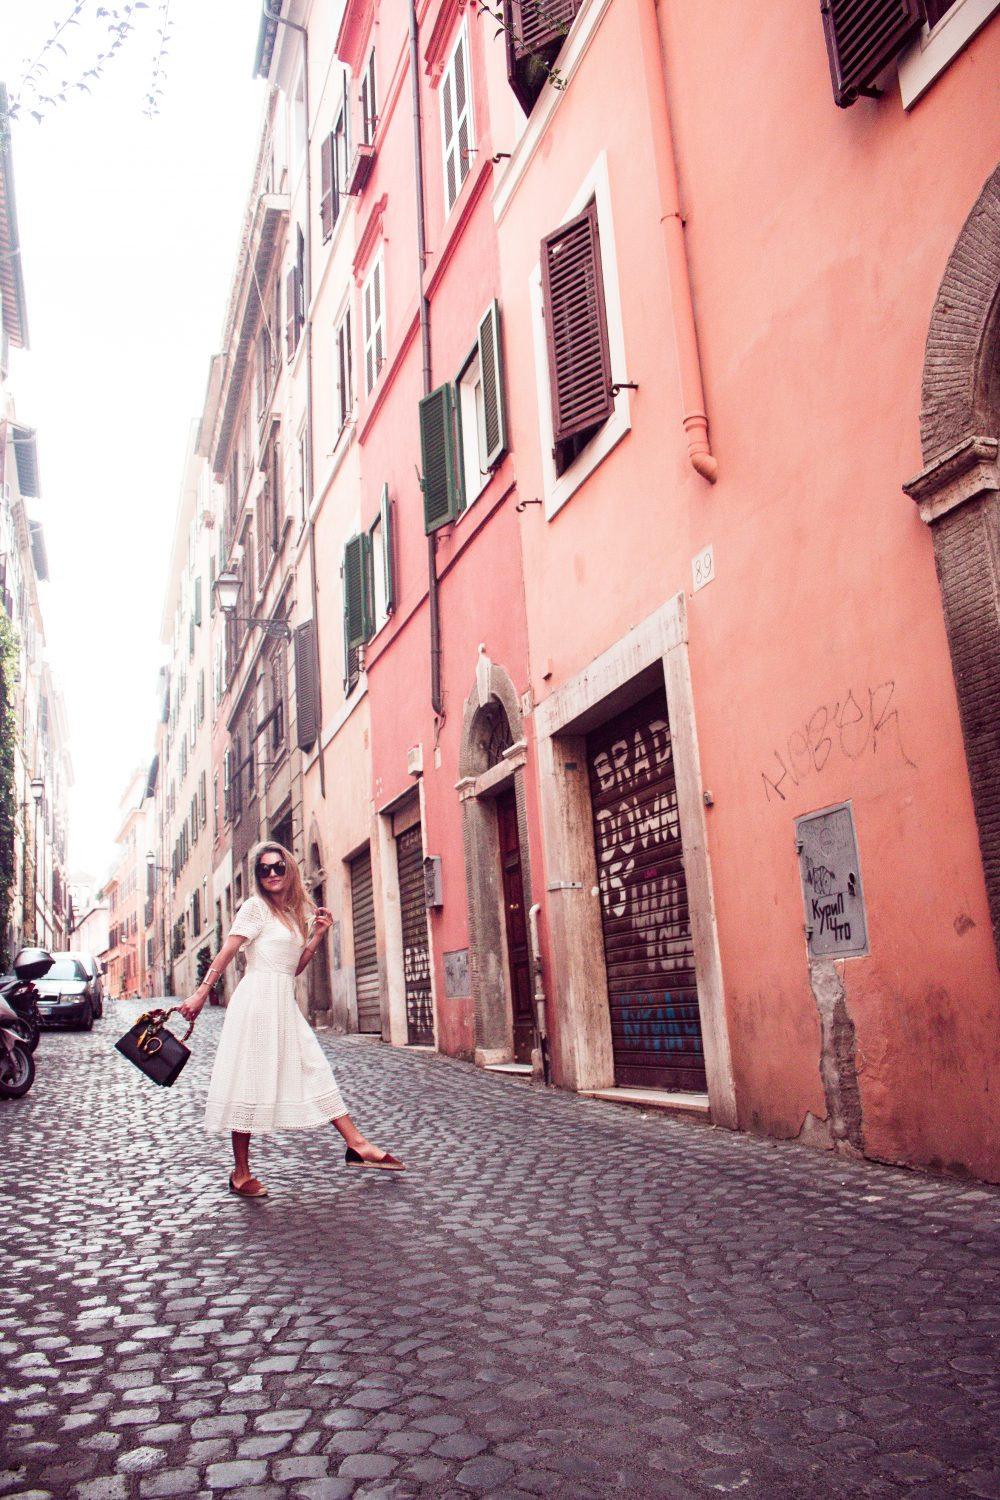 Whitney's Wonderland UK Top Luxury Fashion Blogger wears Boden white lace midi dress, Boden black and brown espadrilles and Gucci dionysus bag in Rome